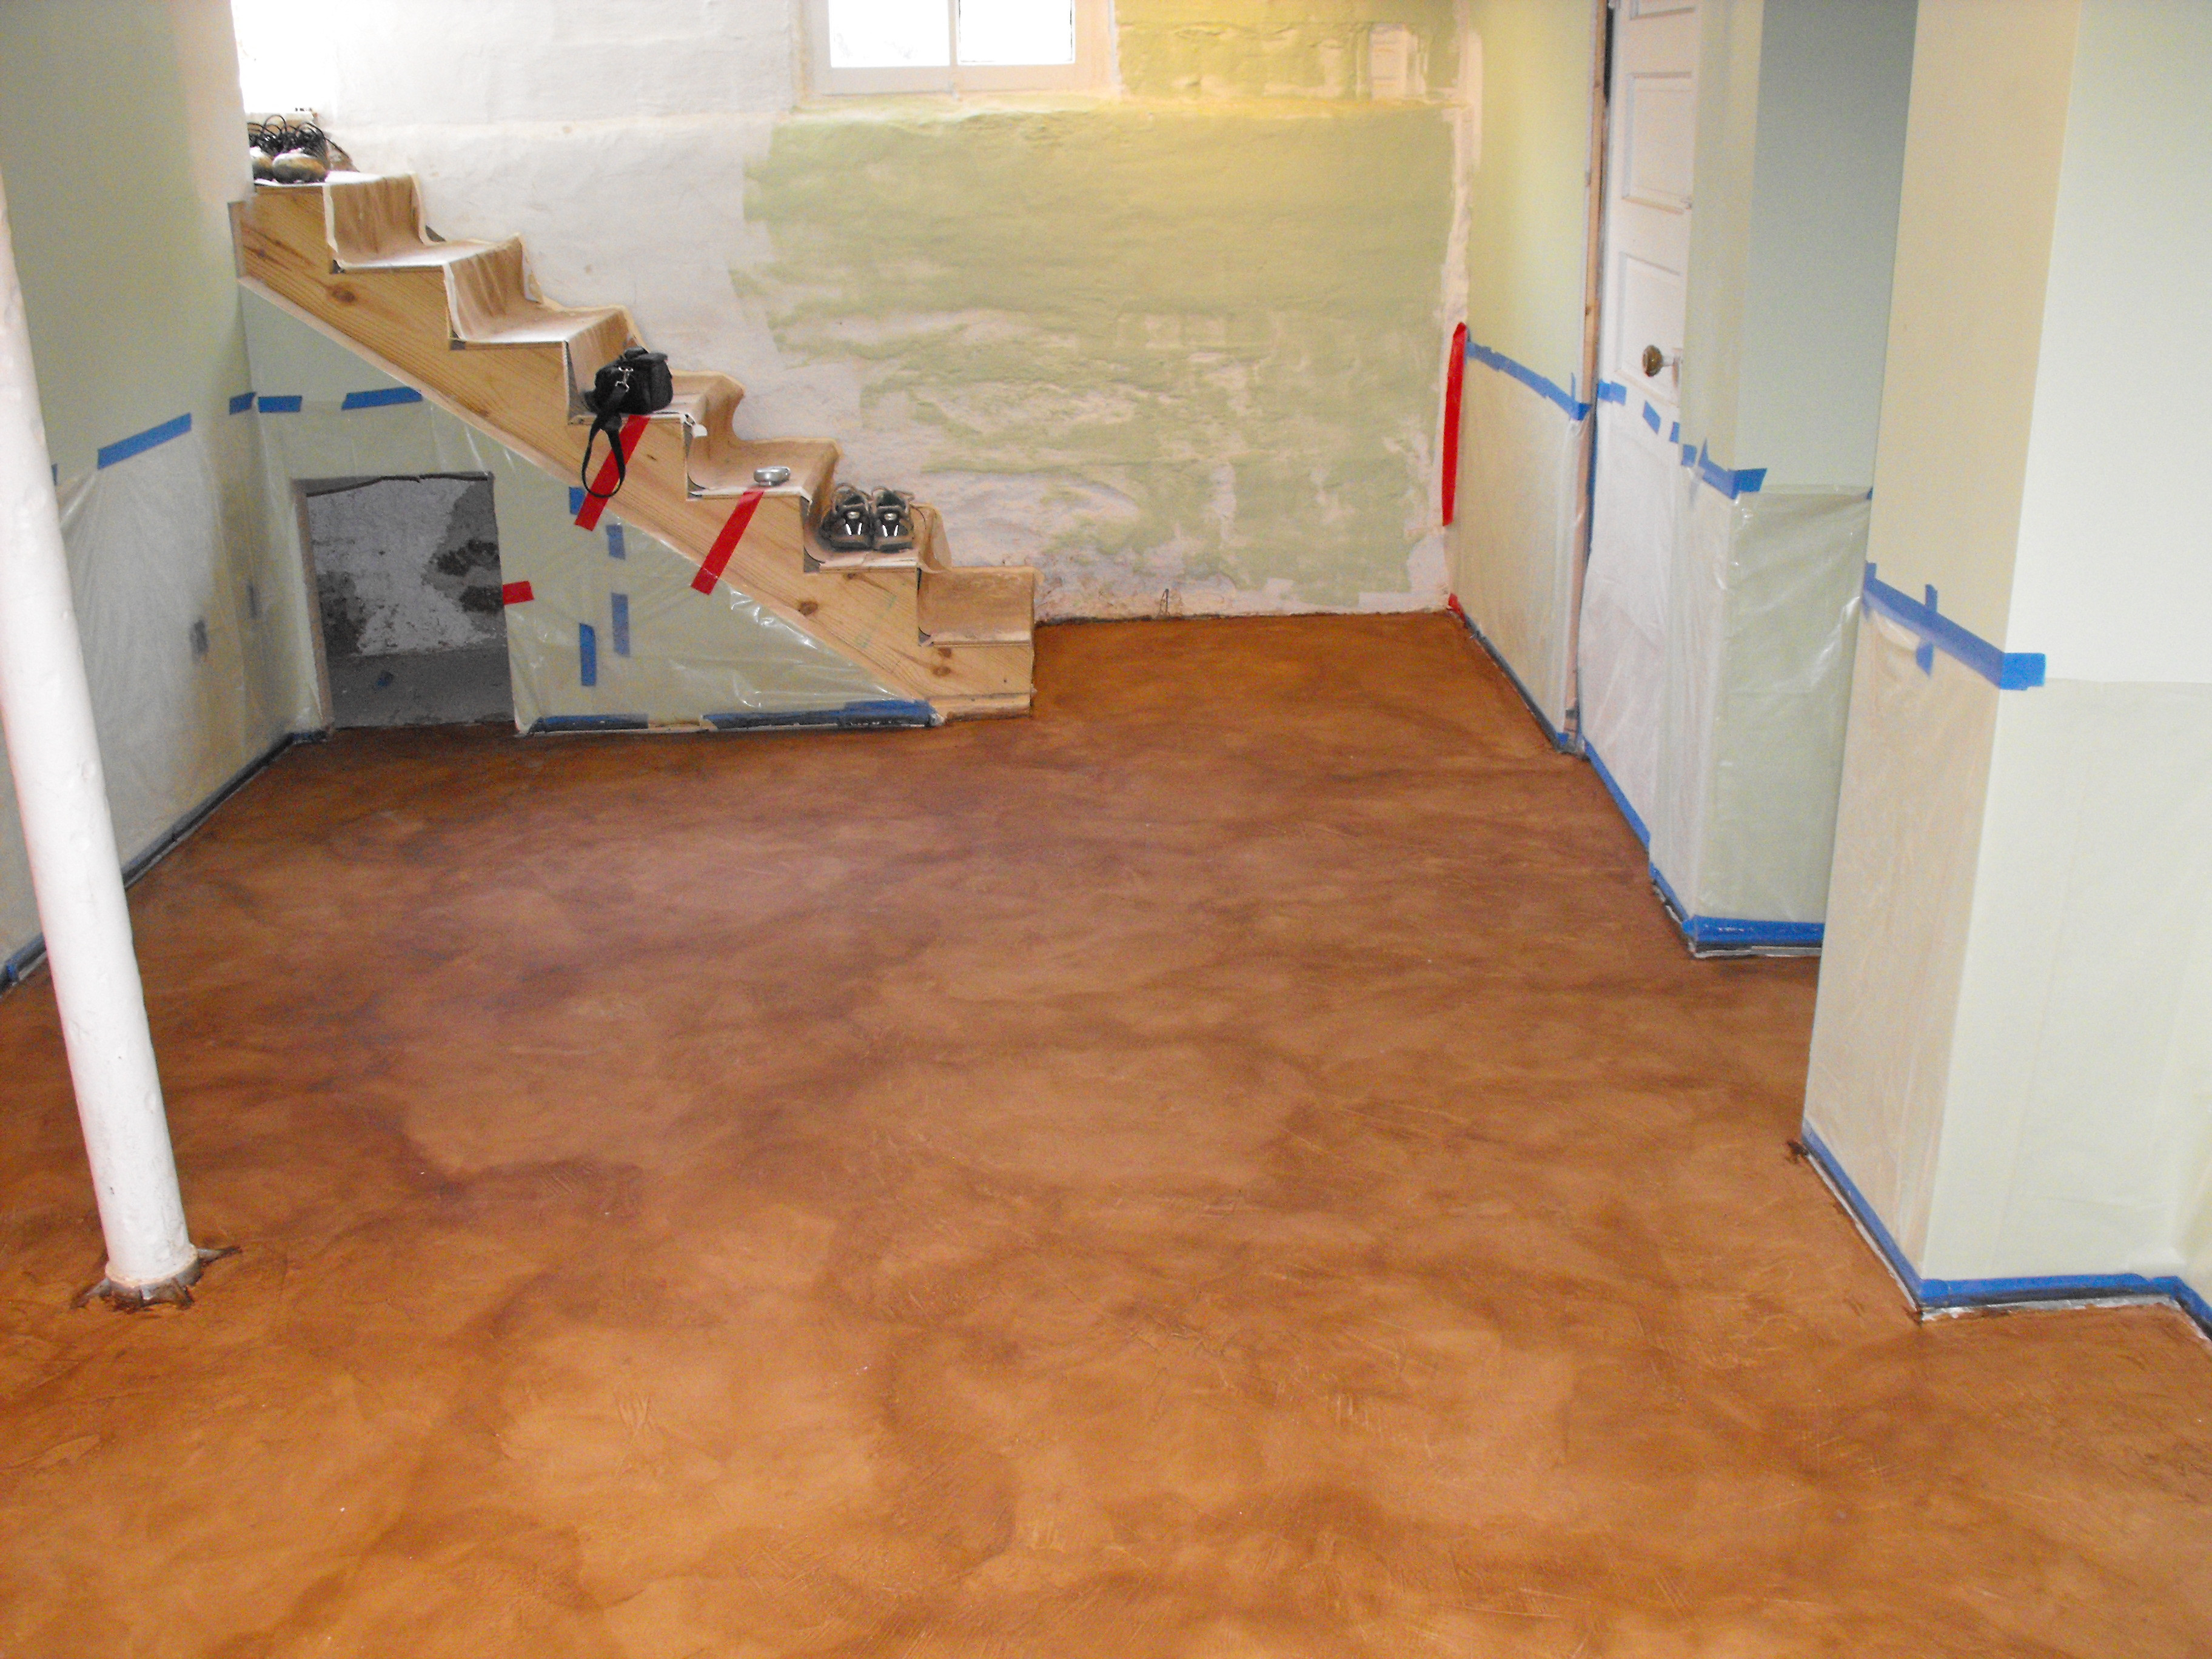 Hardwood On Concrete Basement Floor Of Paint Basement Floor Concrete Natashamillerweb for Painting Unfinished Epoxy Basement Floor with Brown Color